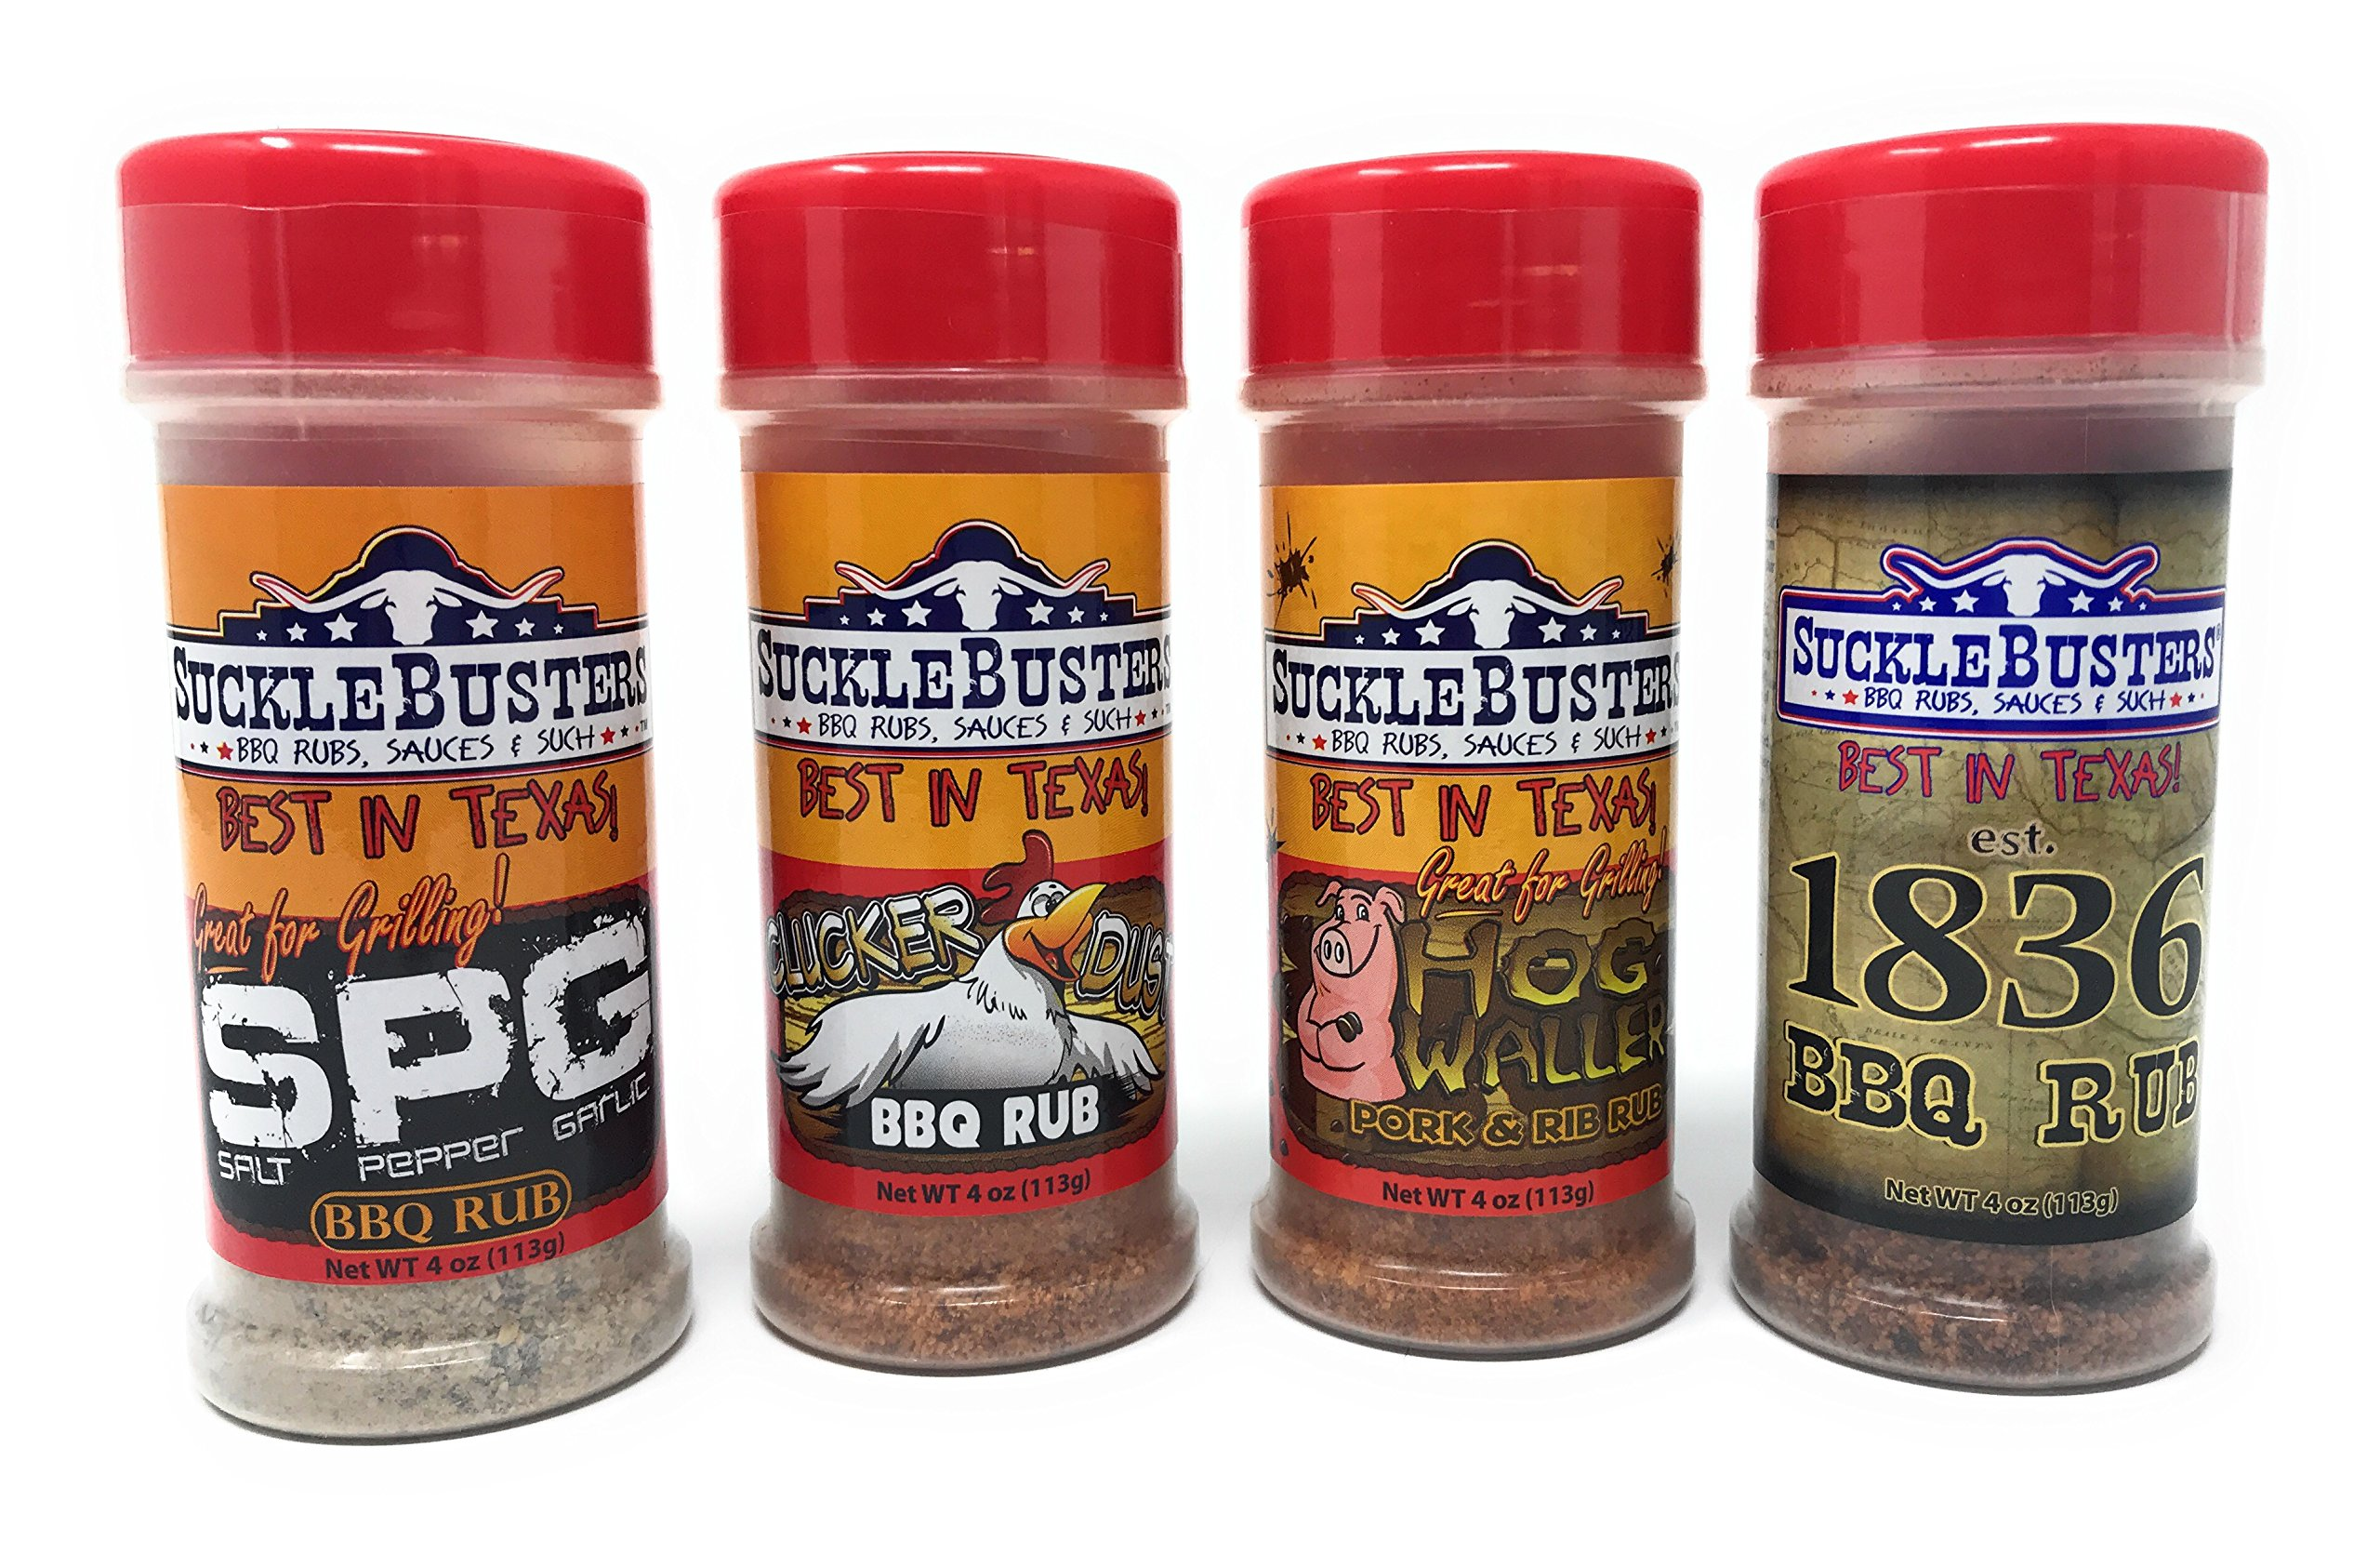 SuckleBusters BBQ Rub Variety Pack - Beef, Pork, Chicken and All Purpose Seasonings (4 Pack/4 Ounce Each)